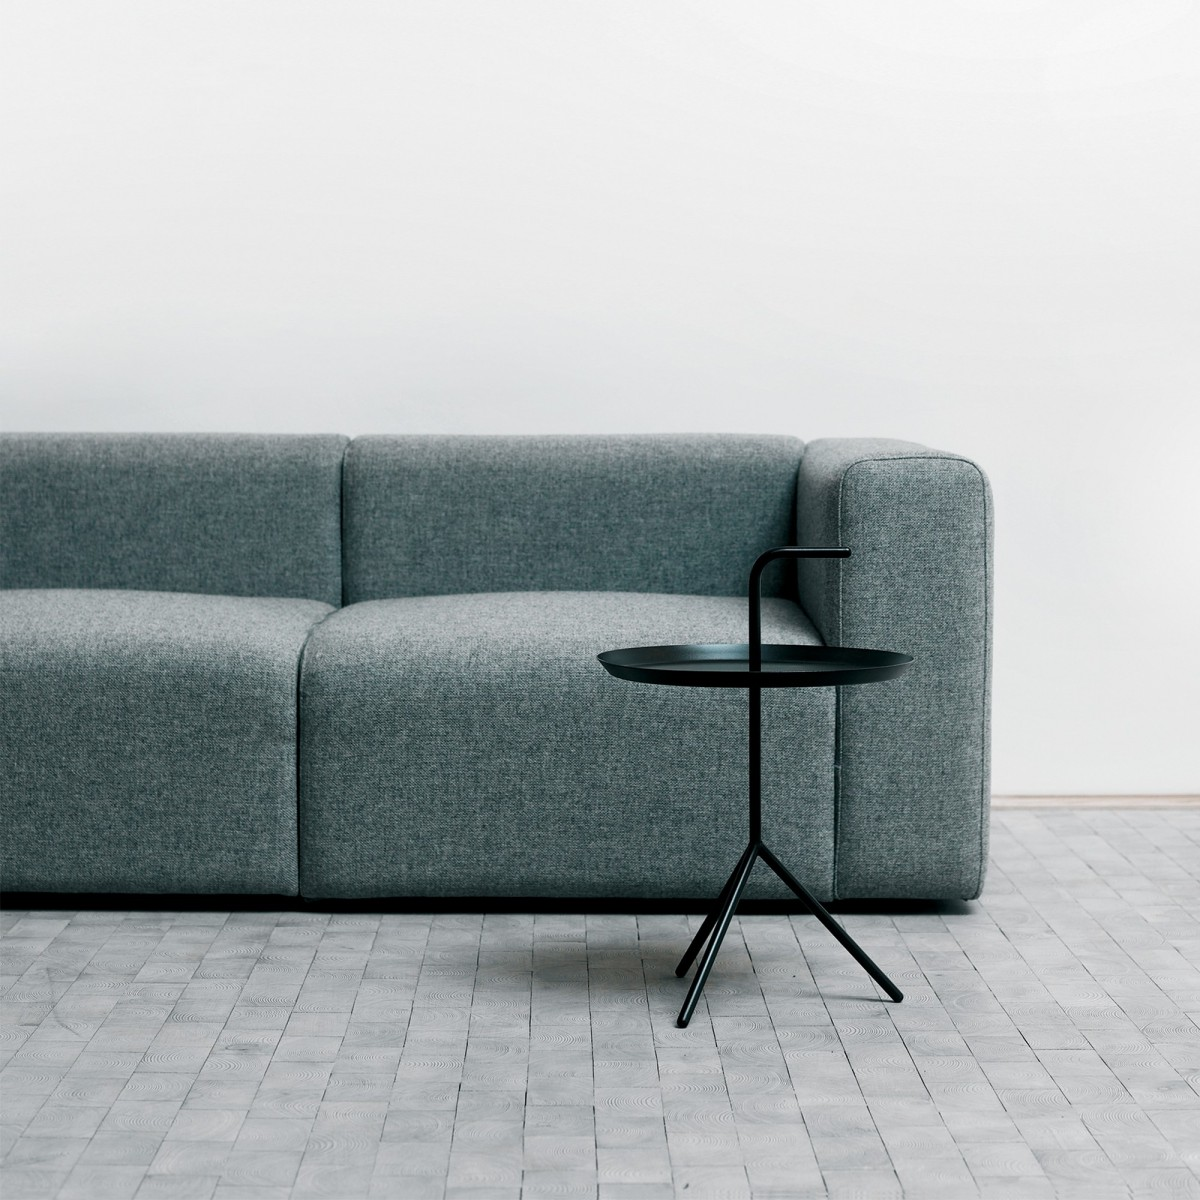 hay sofa kvadrat set in range of 30000 modular mags 2 1 seaters with fabric